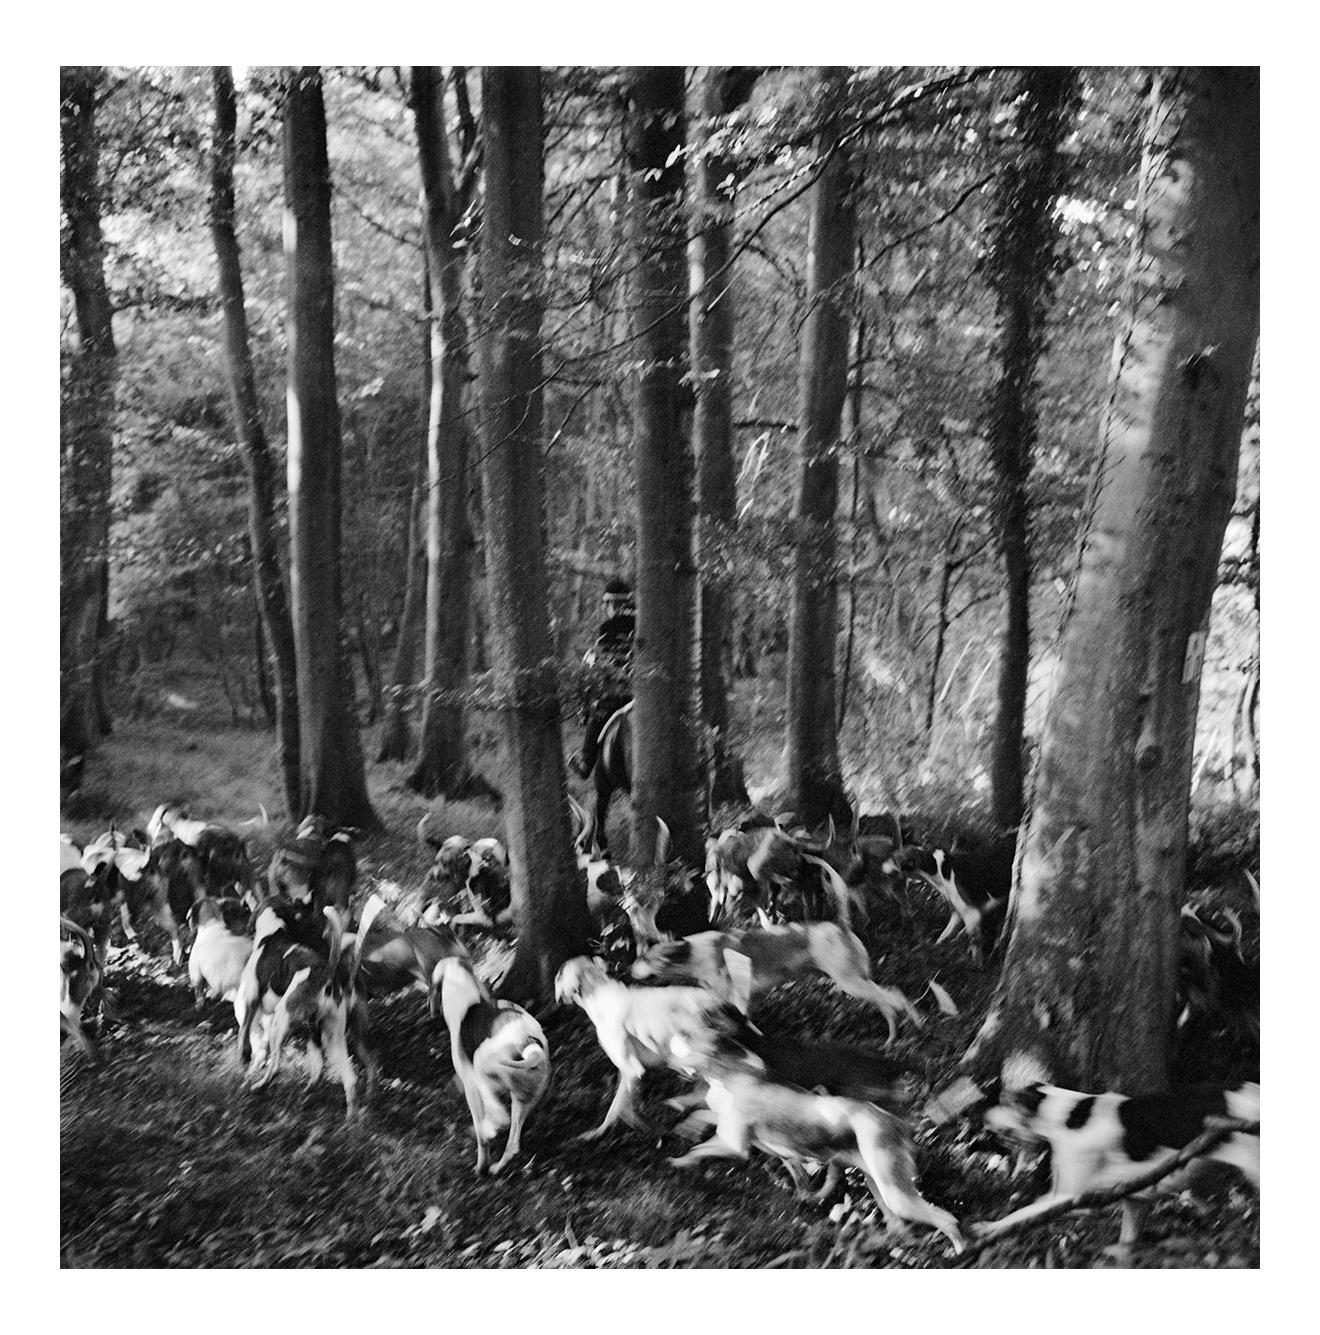 La Chasse au Cerf, Normandie, France, September 1975, 2020, by Jonathan Becker